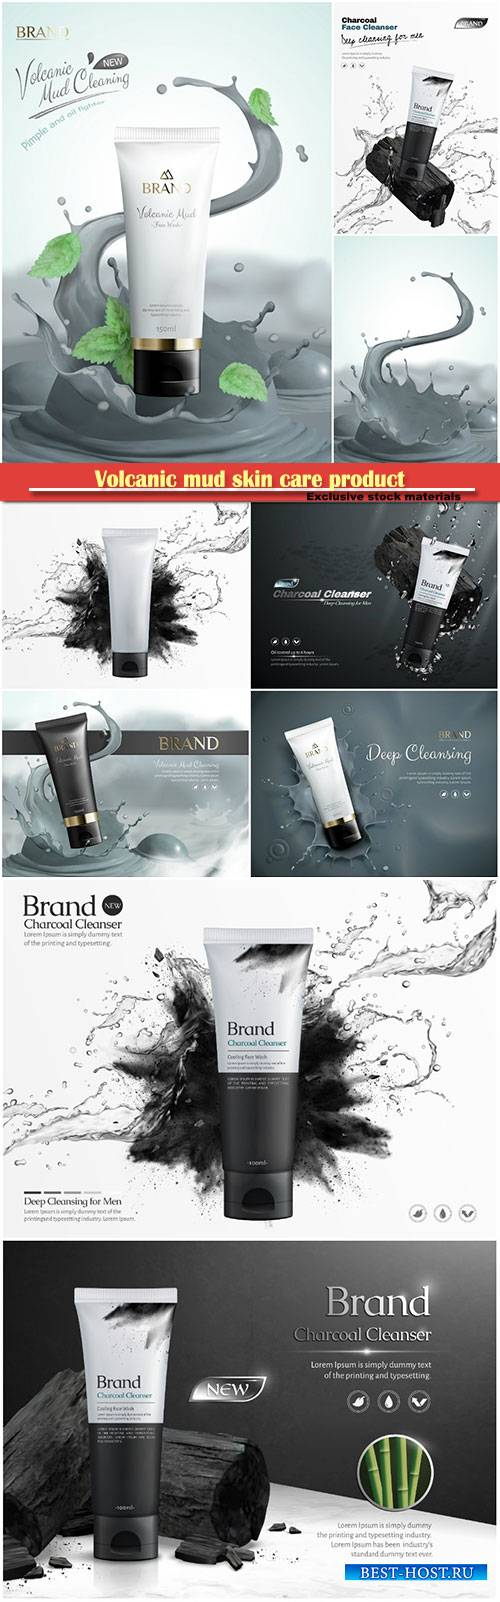 Volcanic mud skin care product, charcoal cleanser commercial ads